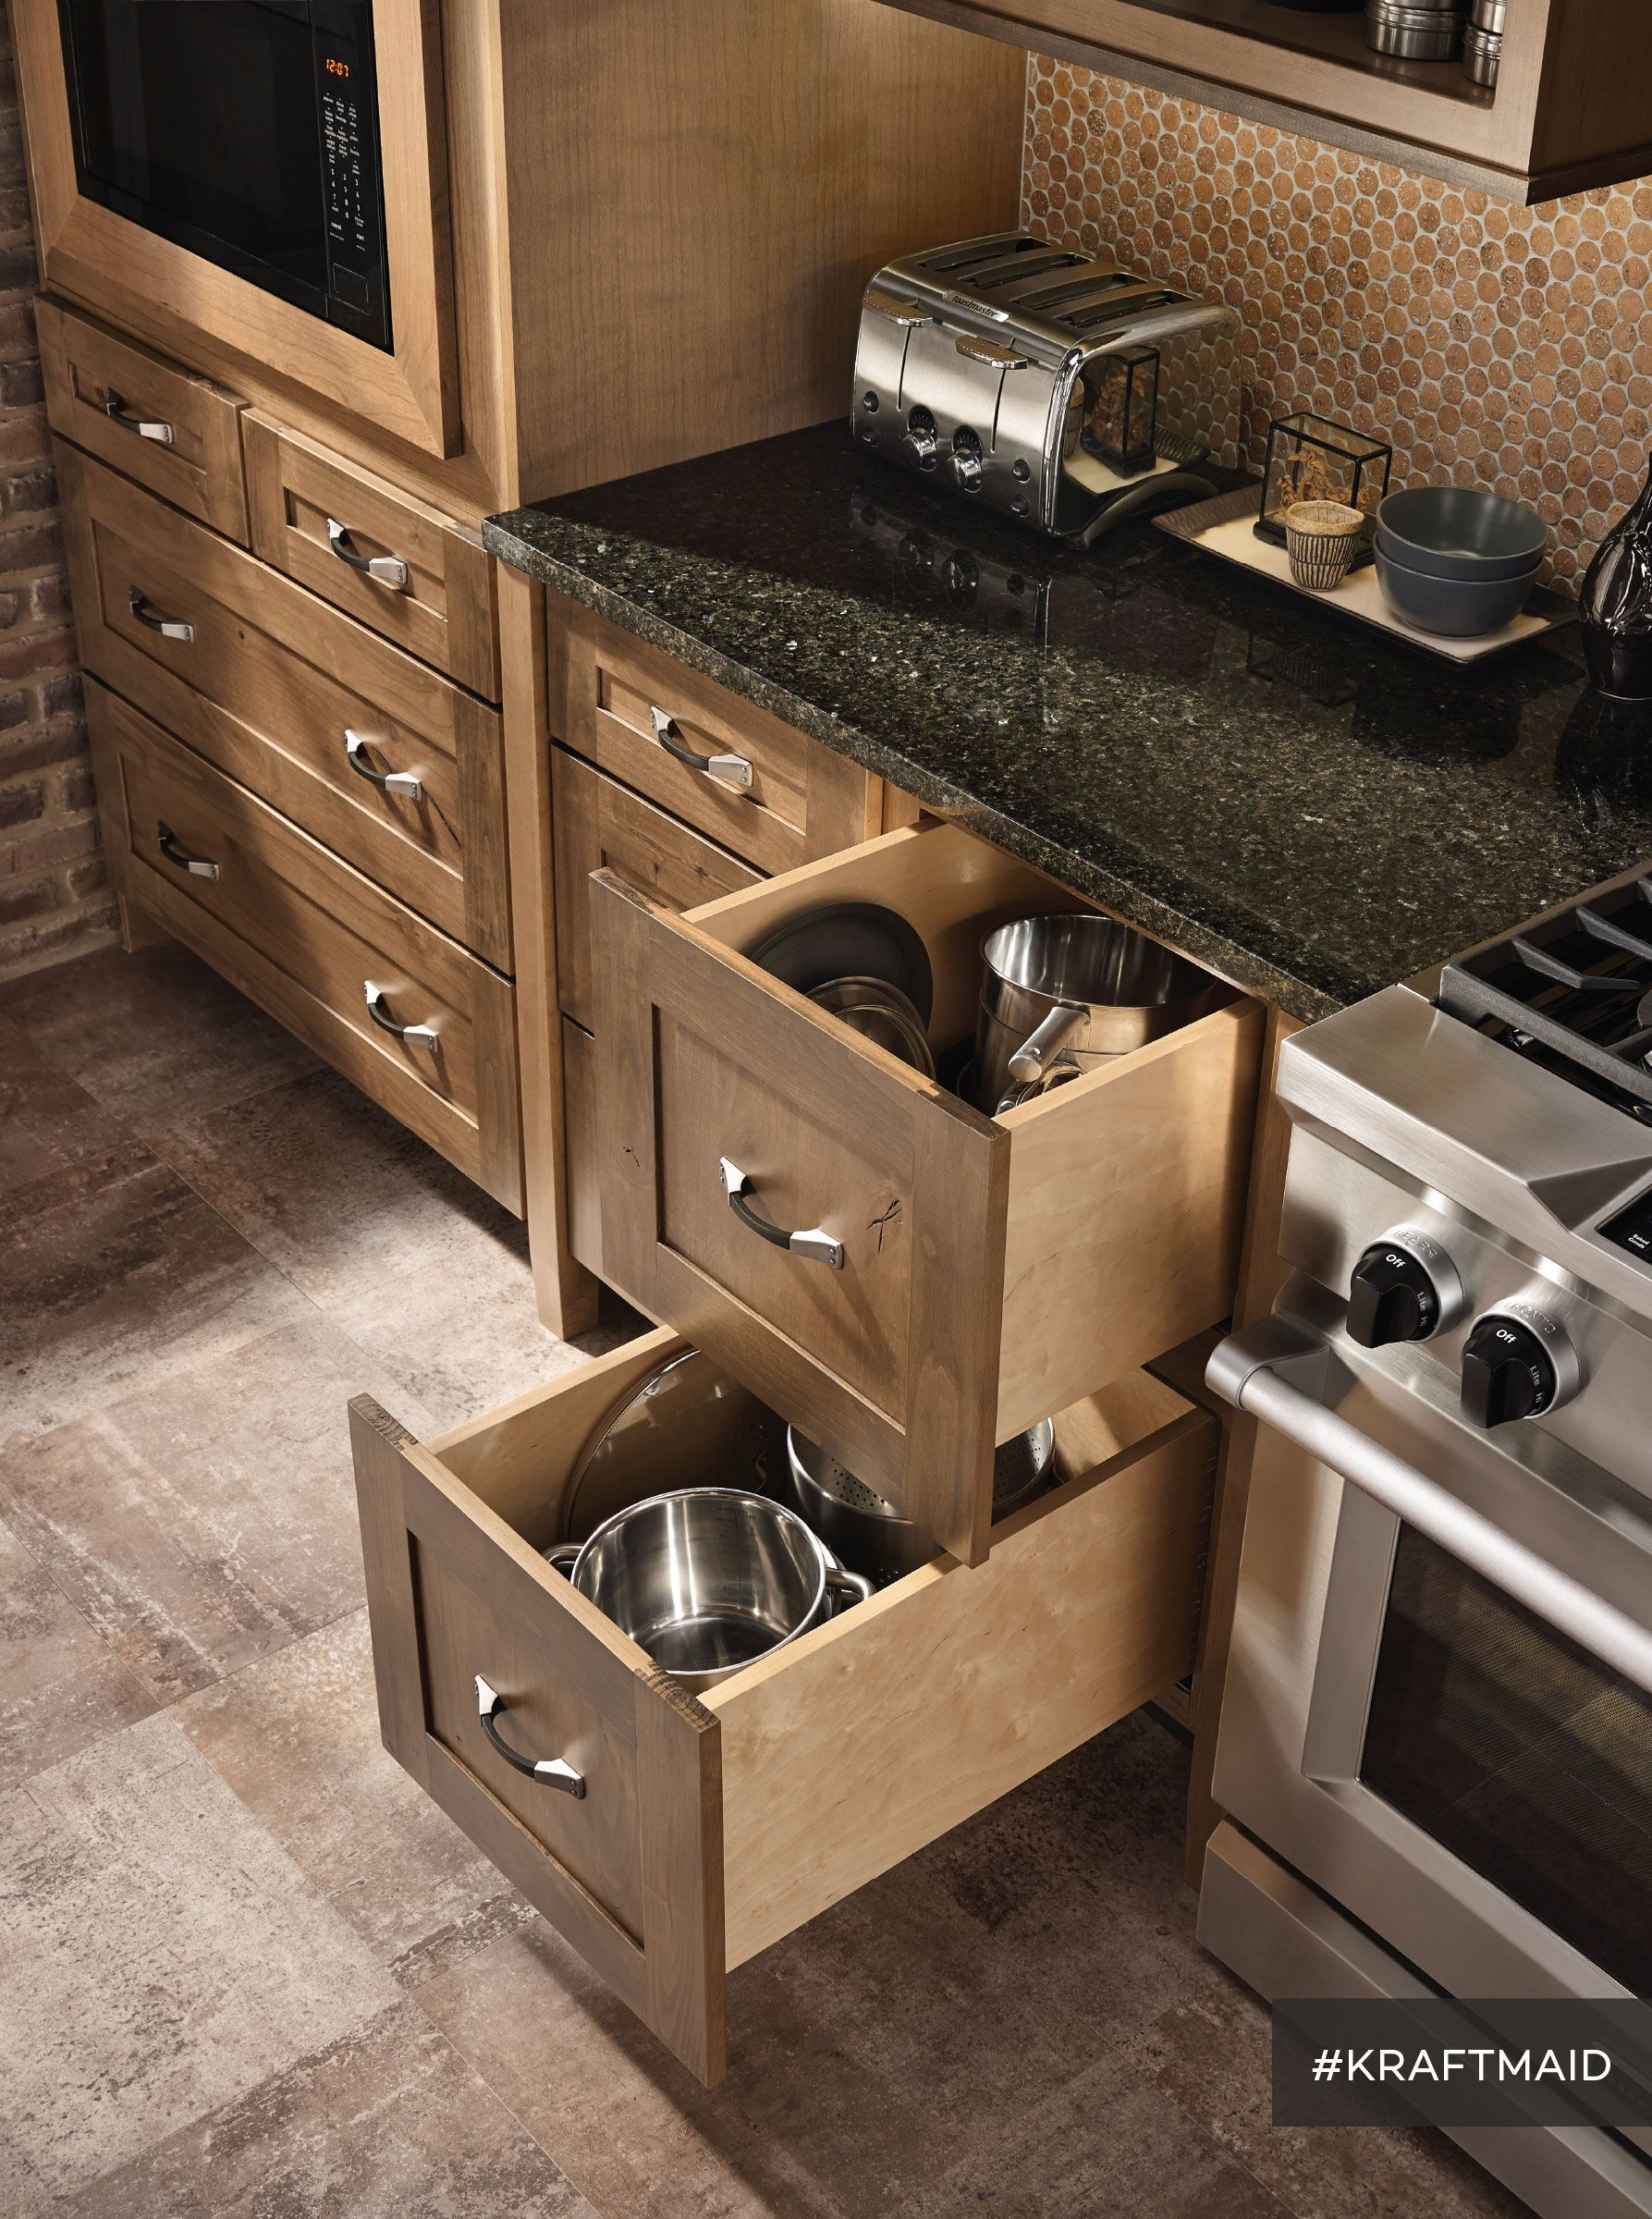 Easy Access Kitchen Storage For Pots And Pans Since 90 Lb Capacity Drawer Slides Are Standard With Kraftmaid Is No Gie